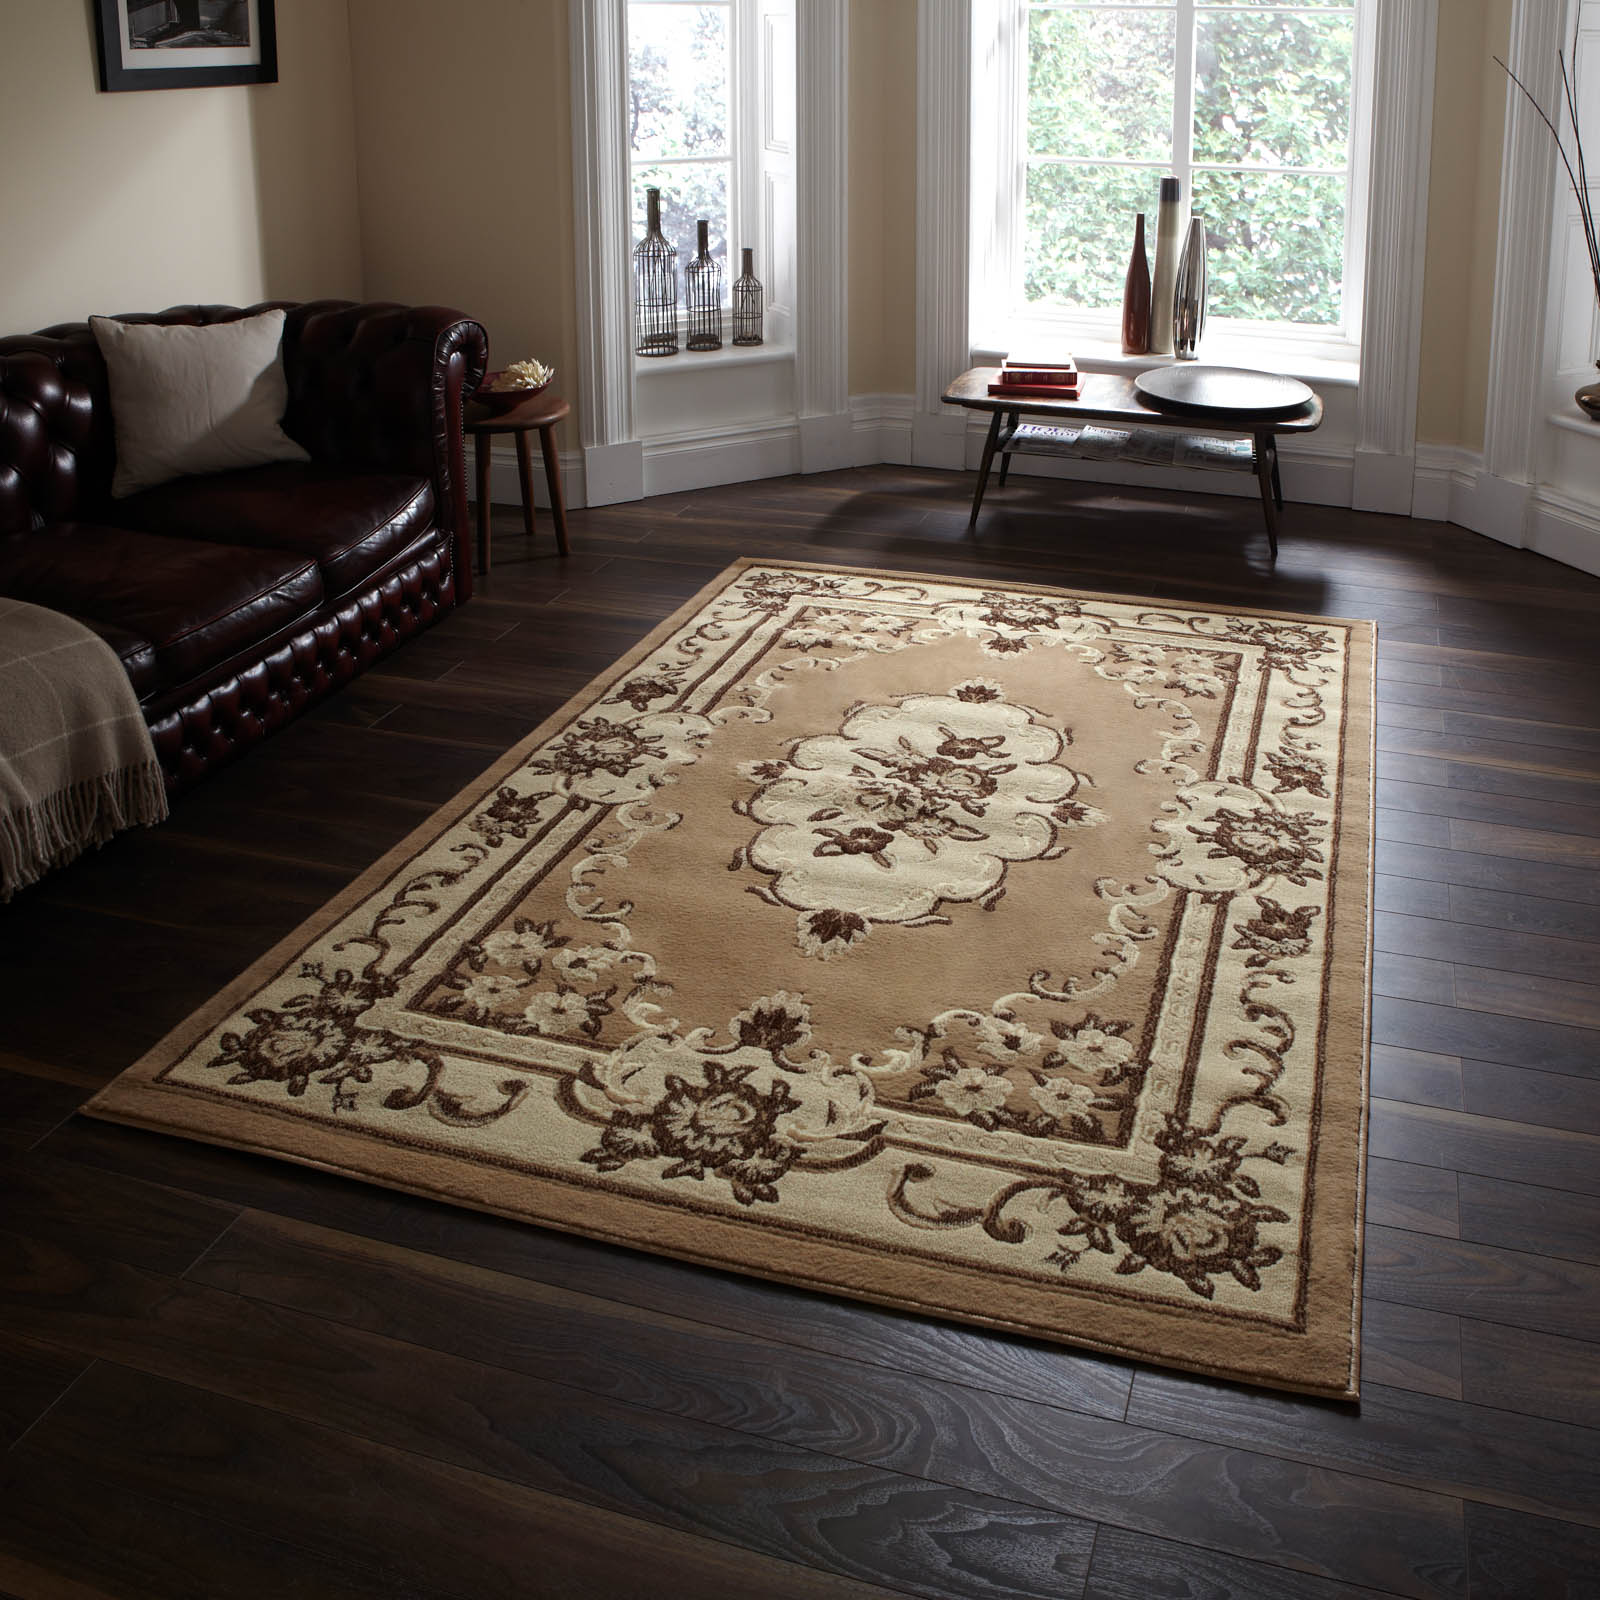 Marrakesh Rugs in Beige